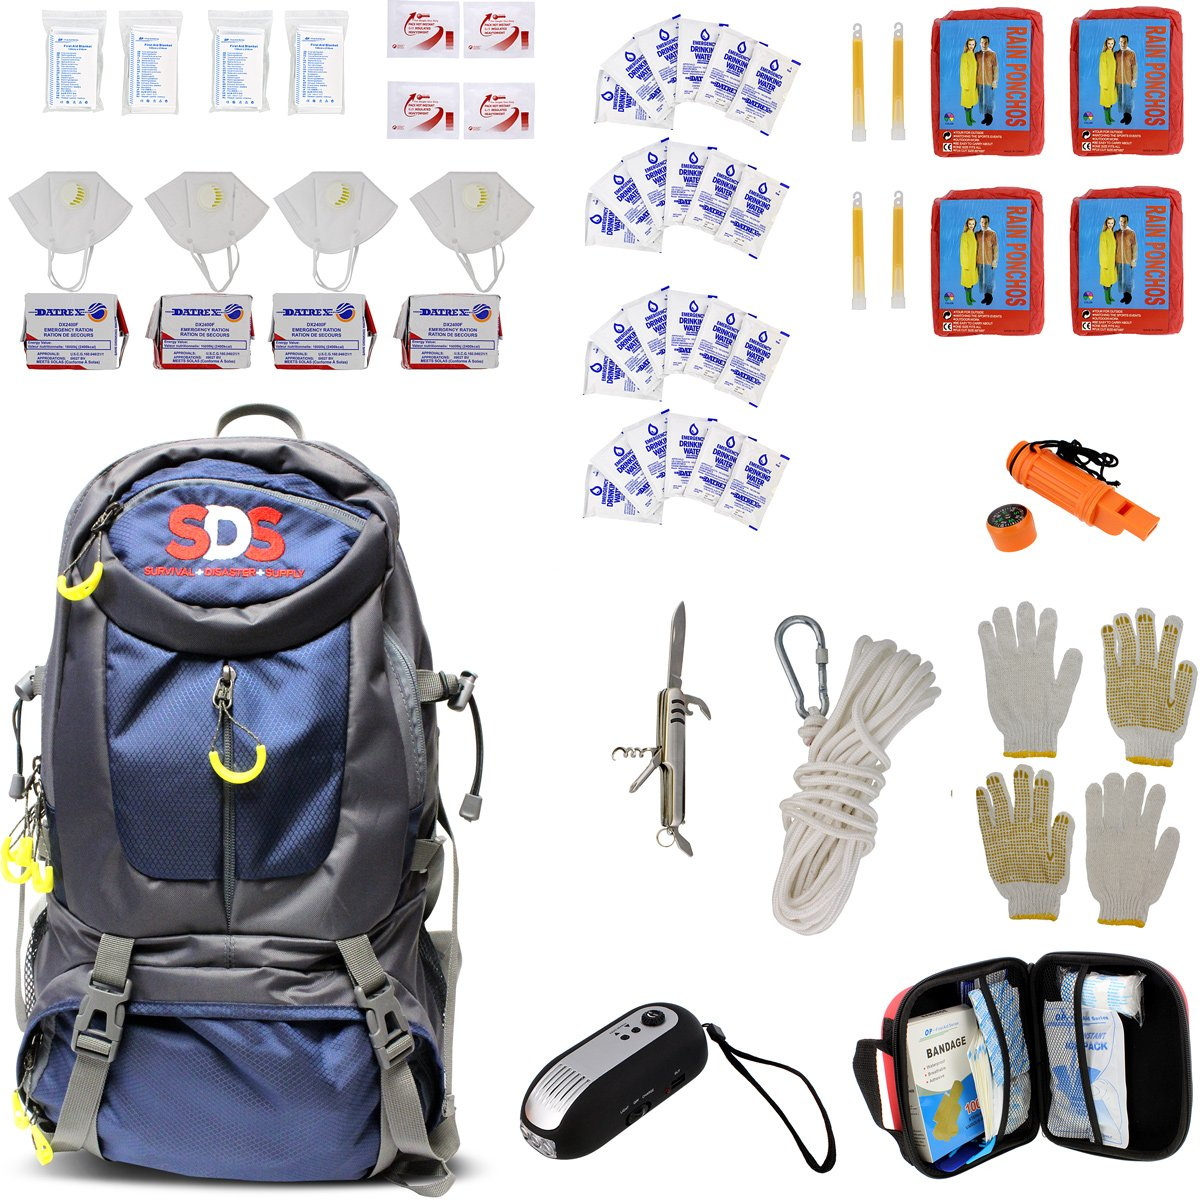 SDS Survival Backpack Emergency Disaster Prepper Gear Bag Food Kit Earthquake, Zombie Apocalypse Supplies 4 Person 72 Hr by SDS